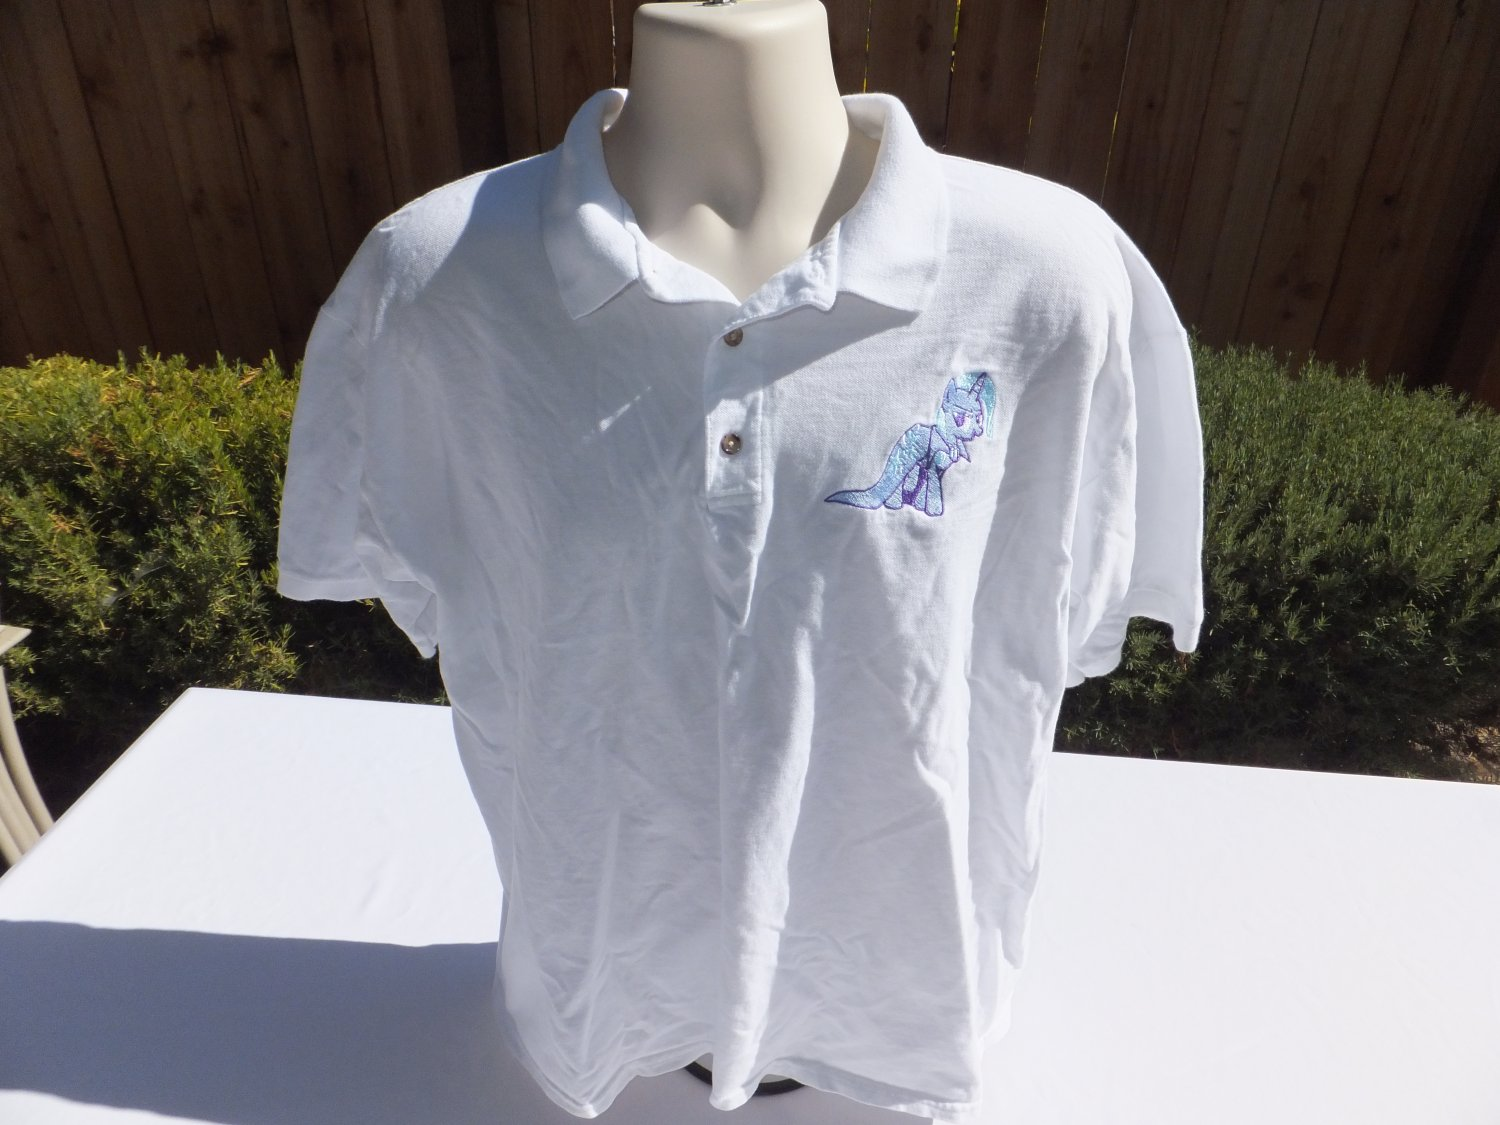 � MLP My Little Pony Embroidered TRIXIE Adult Polo Shirt XL (Extra Large) White �